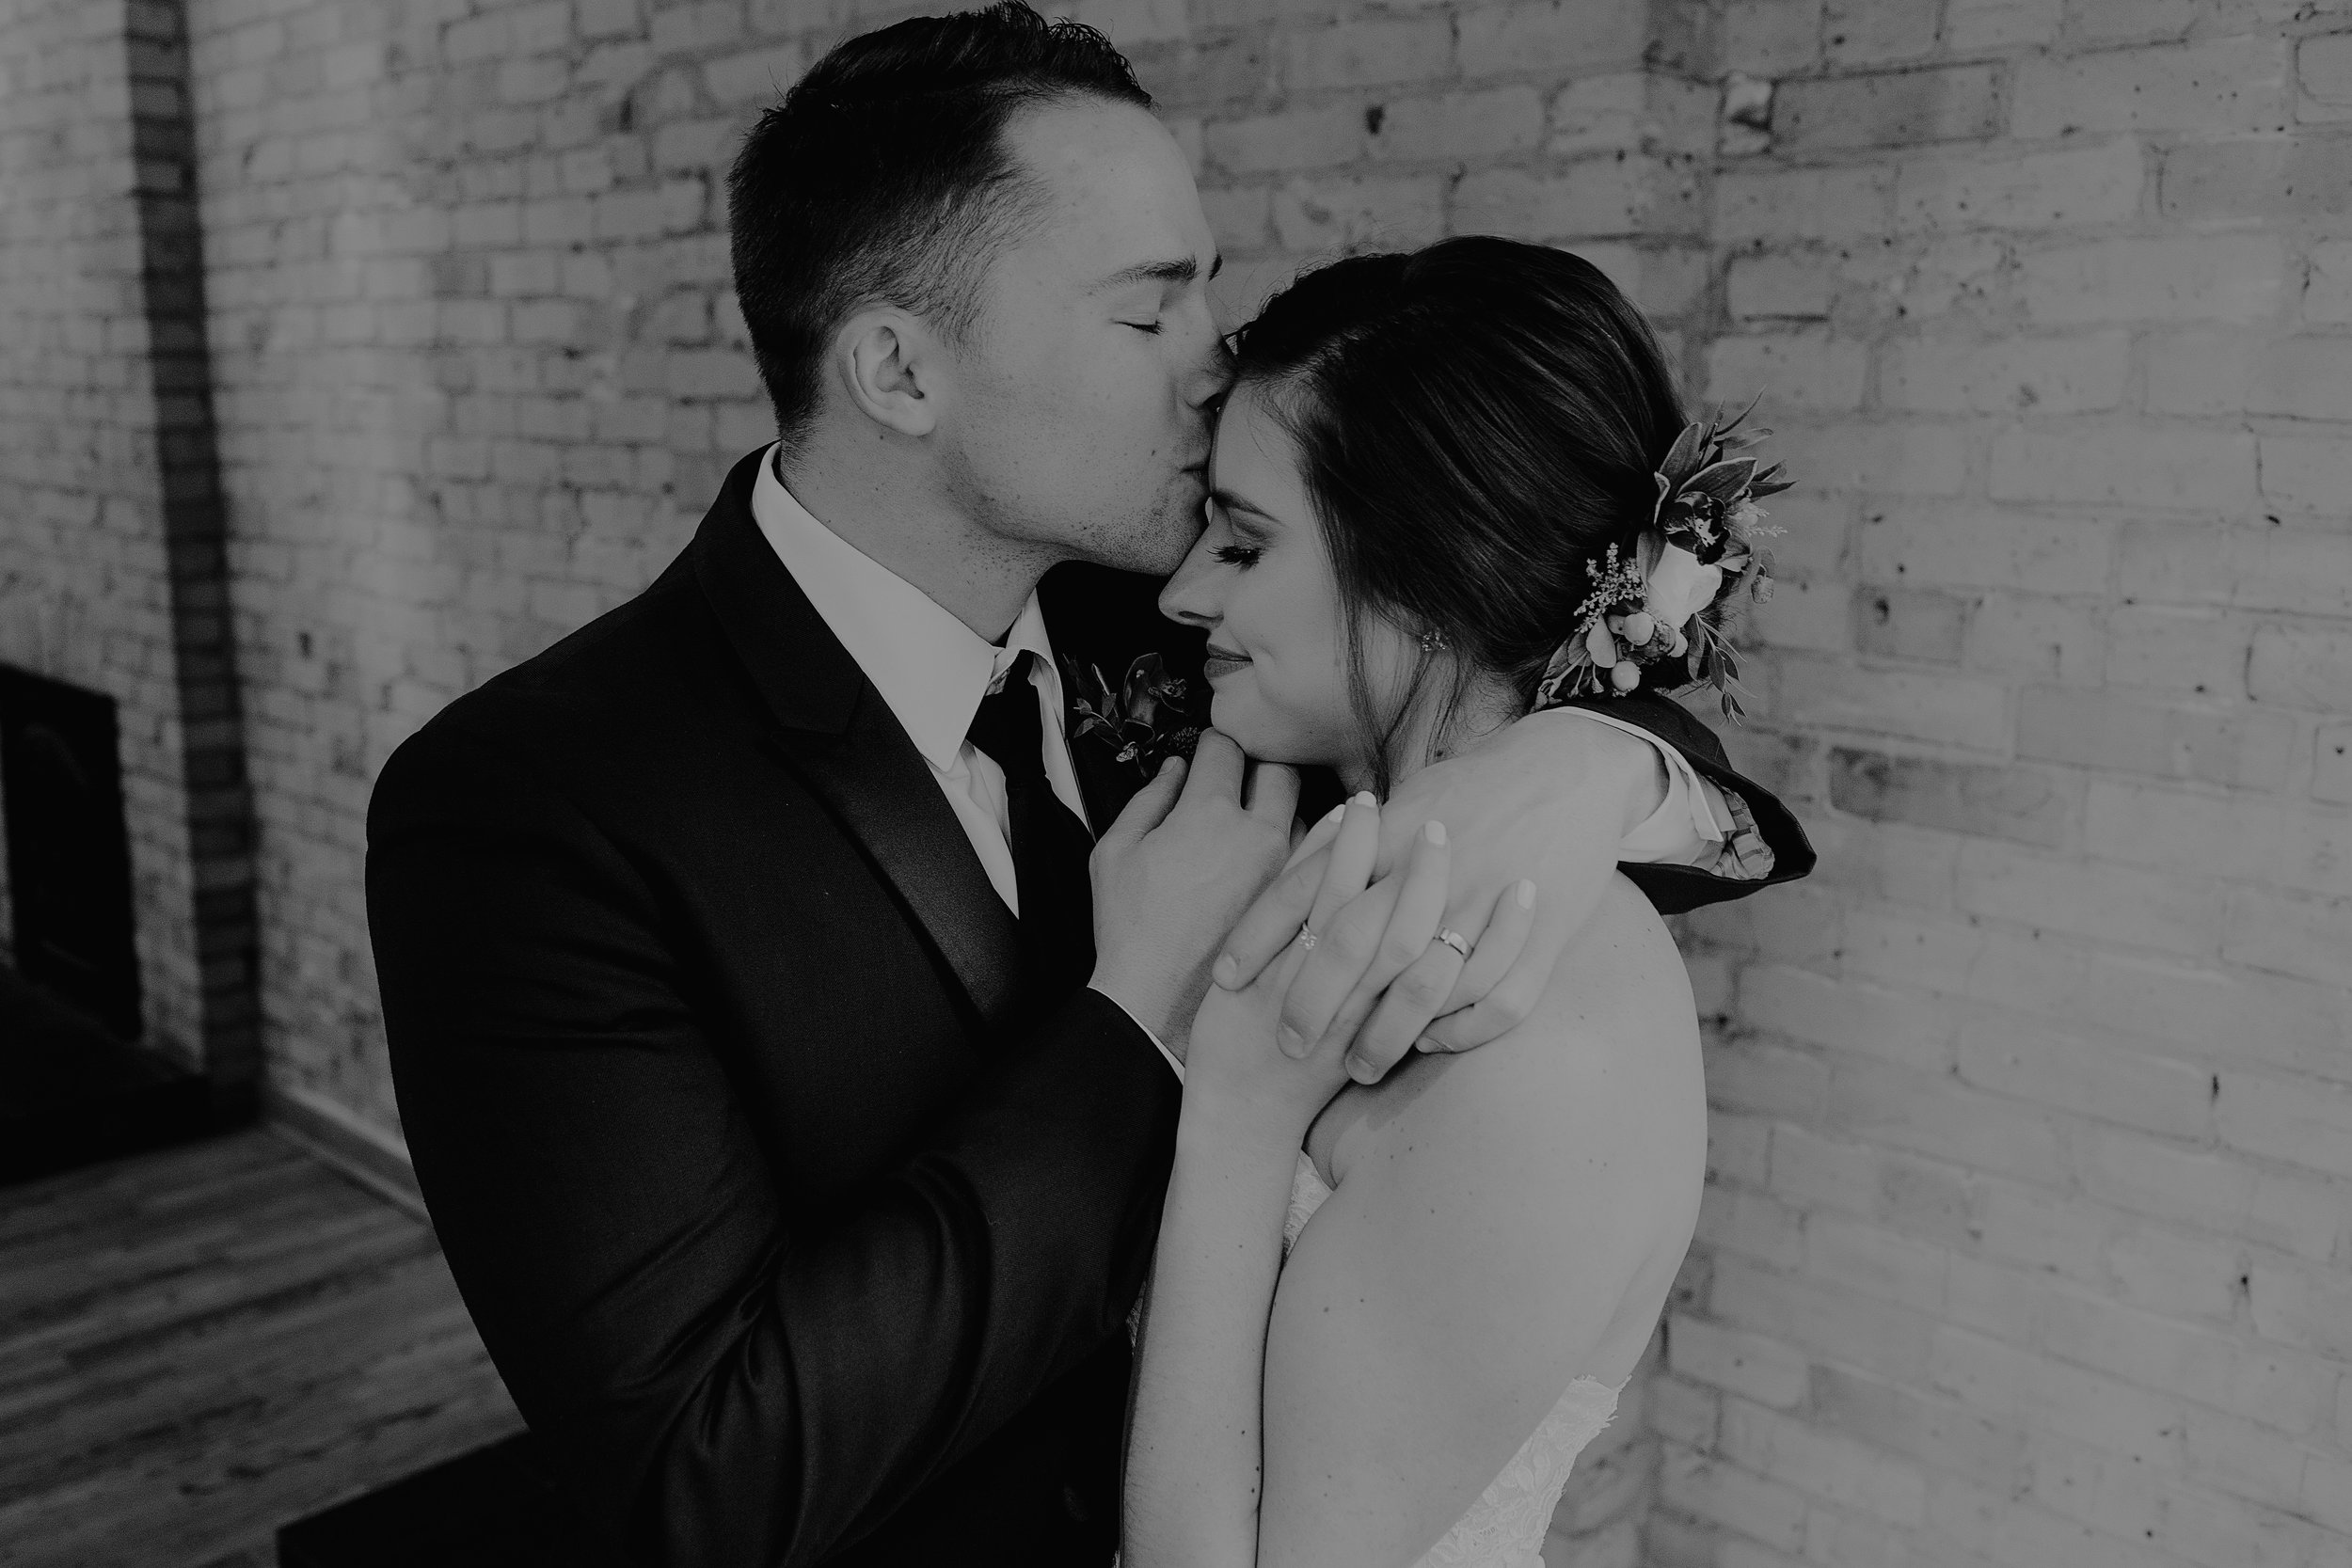 Groom Kissing Bride on Forehead - Wedding at Onesto in Milwaukee, Wisconsin